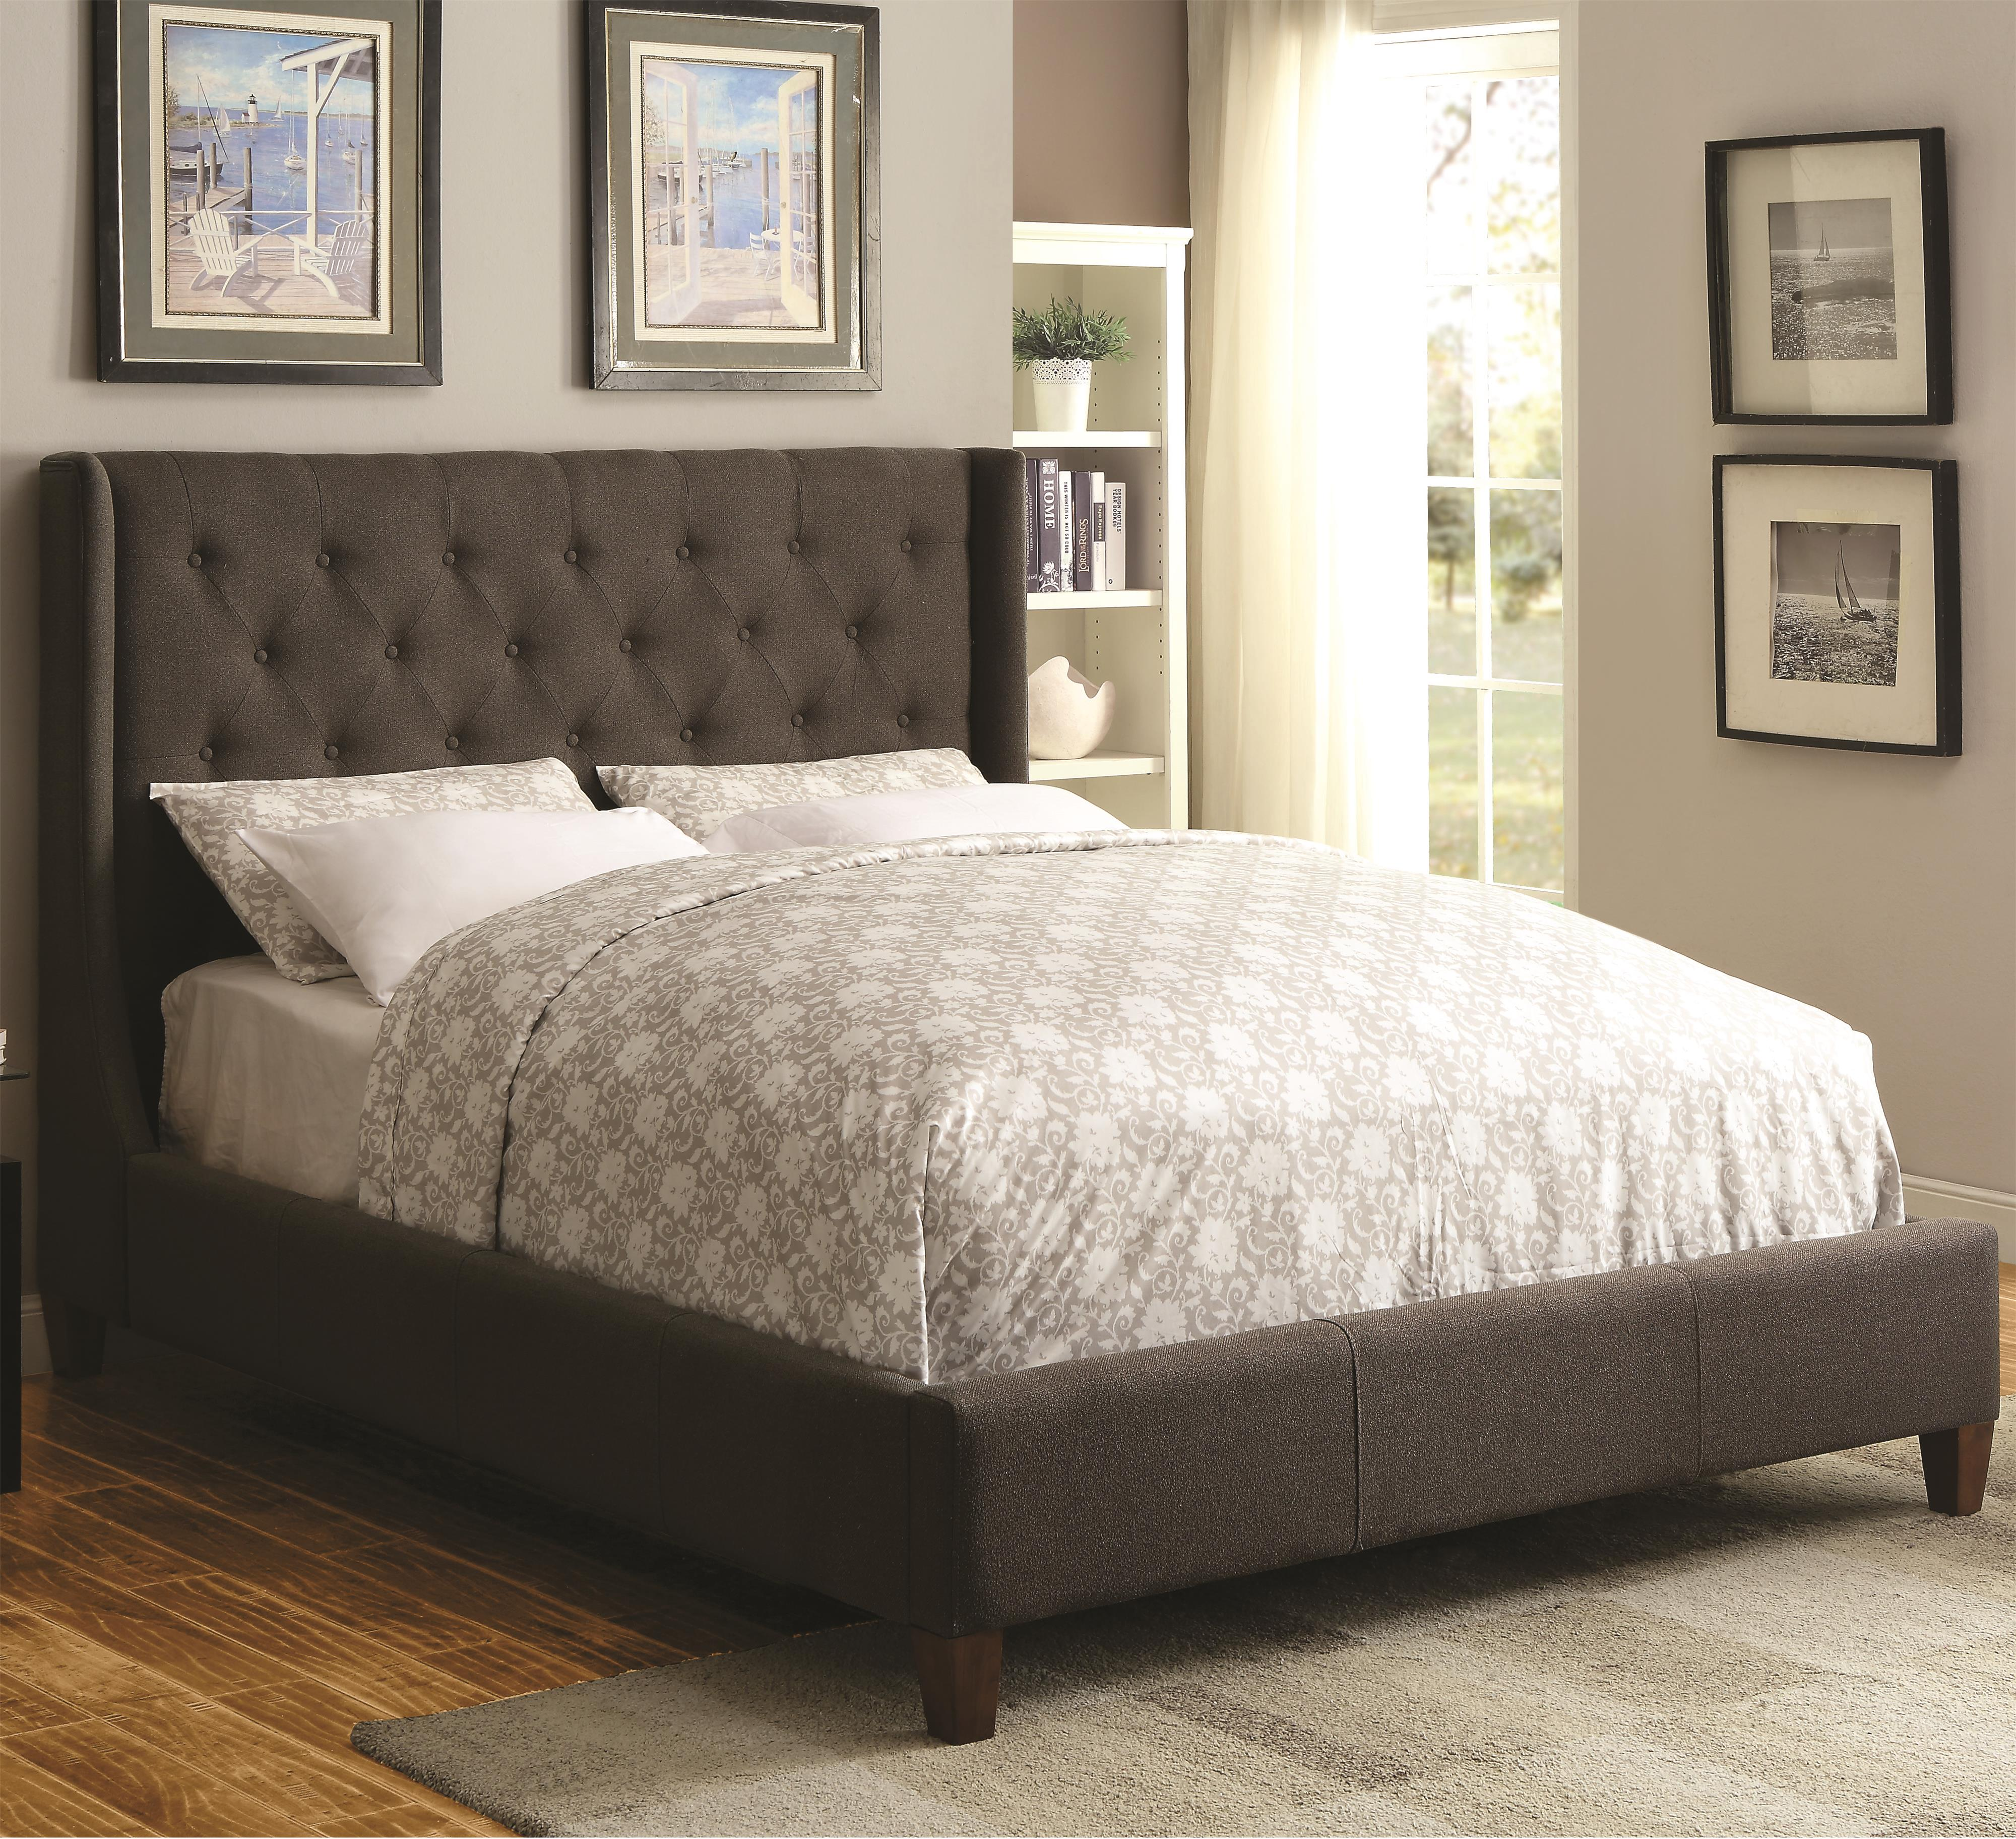 Coaster Upholstered Beds Queen Upholstered Bed - Item Number: 300453Q